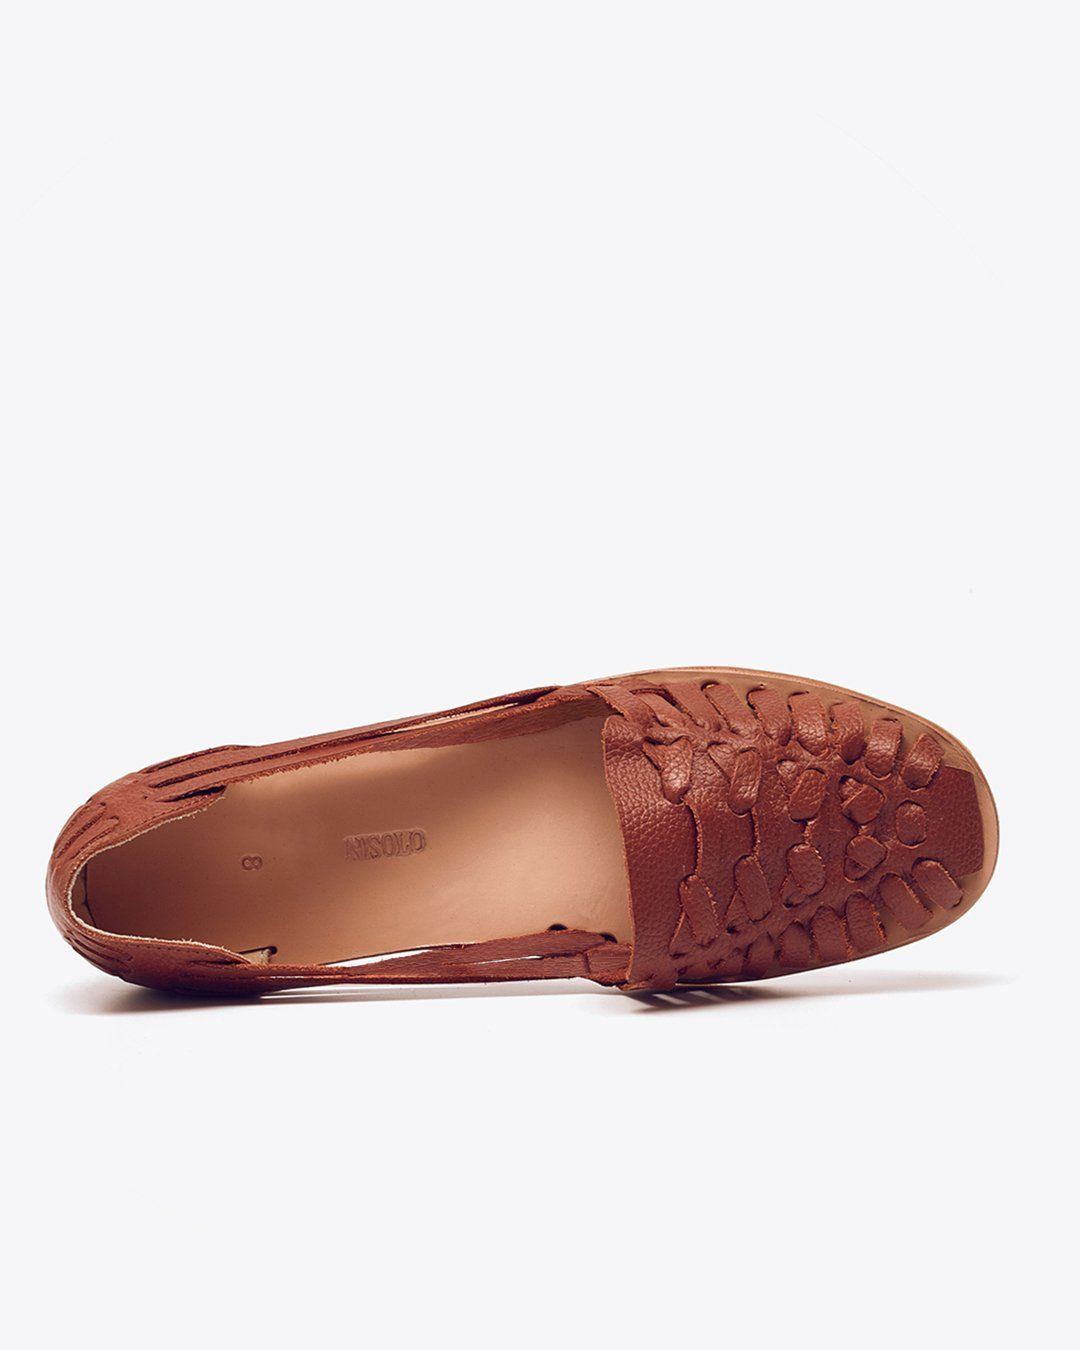 Ecuador Huarache Sandal Burnt Sienna | Exchange Only Women's Leather Sandal Nisolo